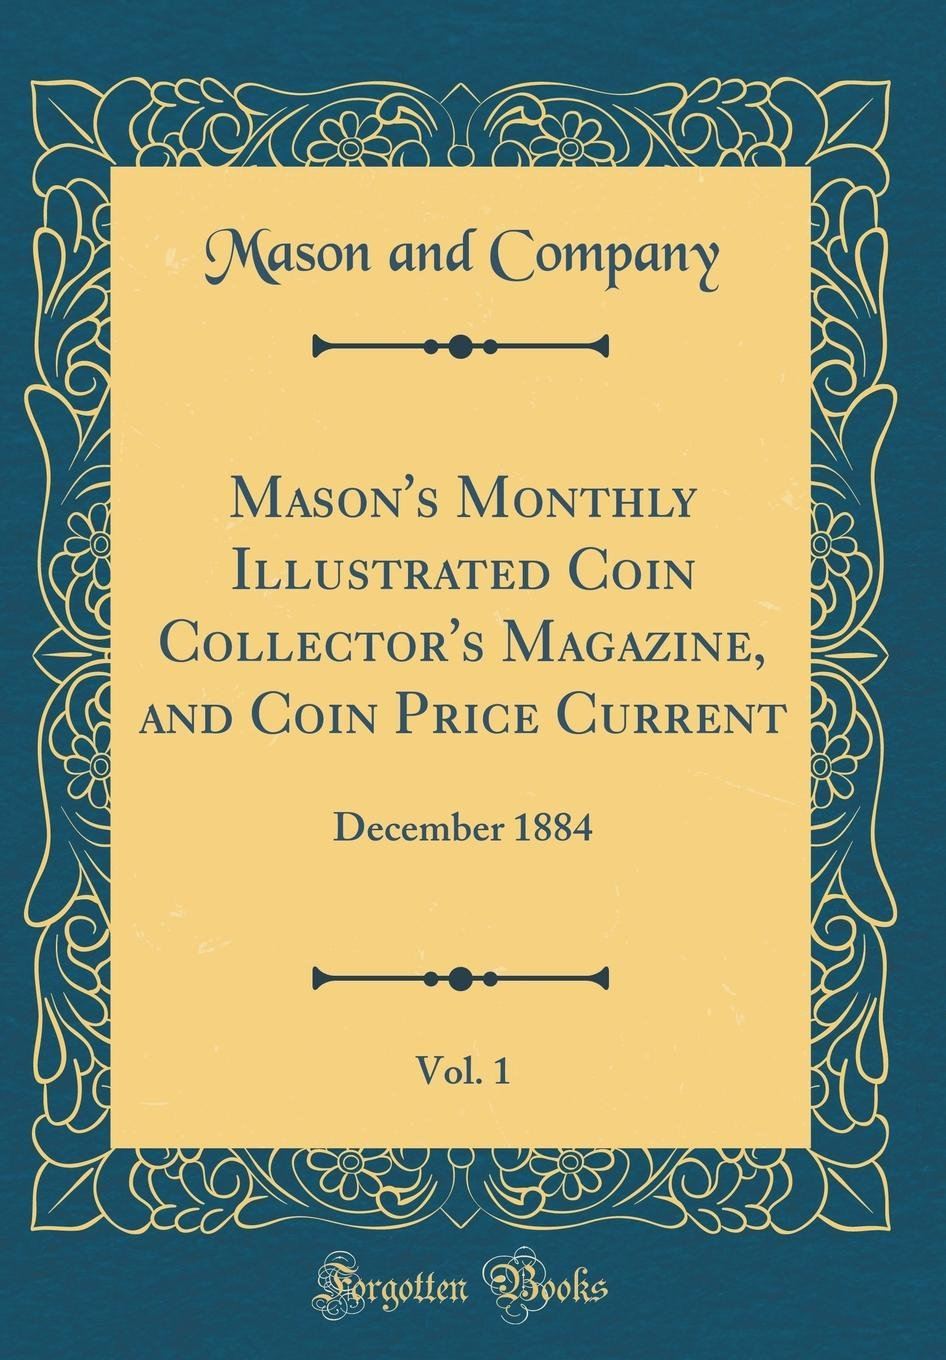 Mason's Monthly Illustrated Coin Collector's Magazine, and Coin Price Current, Vol. 1: December 1884 (Classic Reprint) ebook